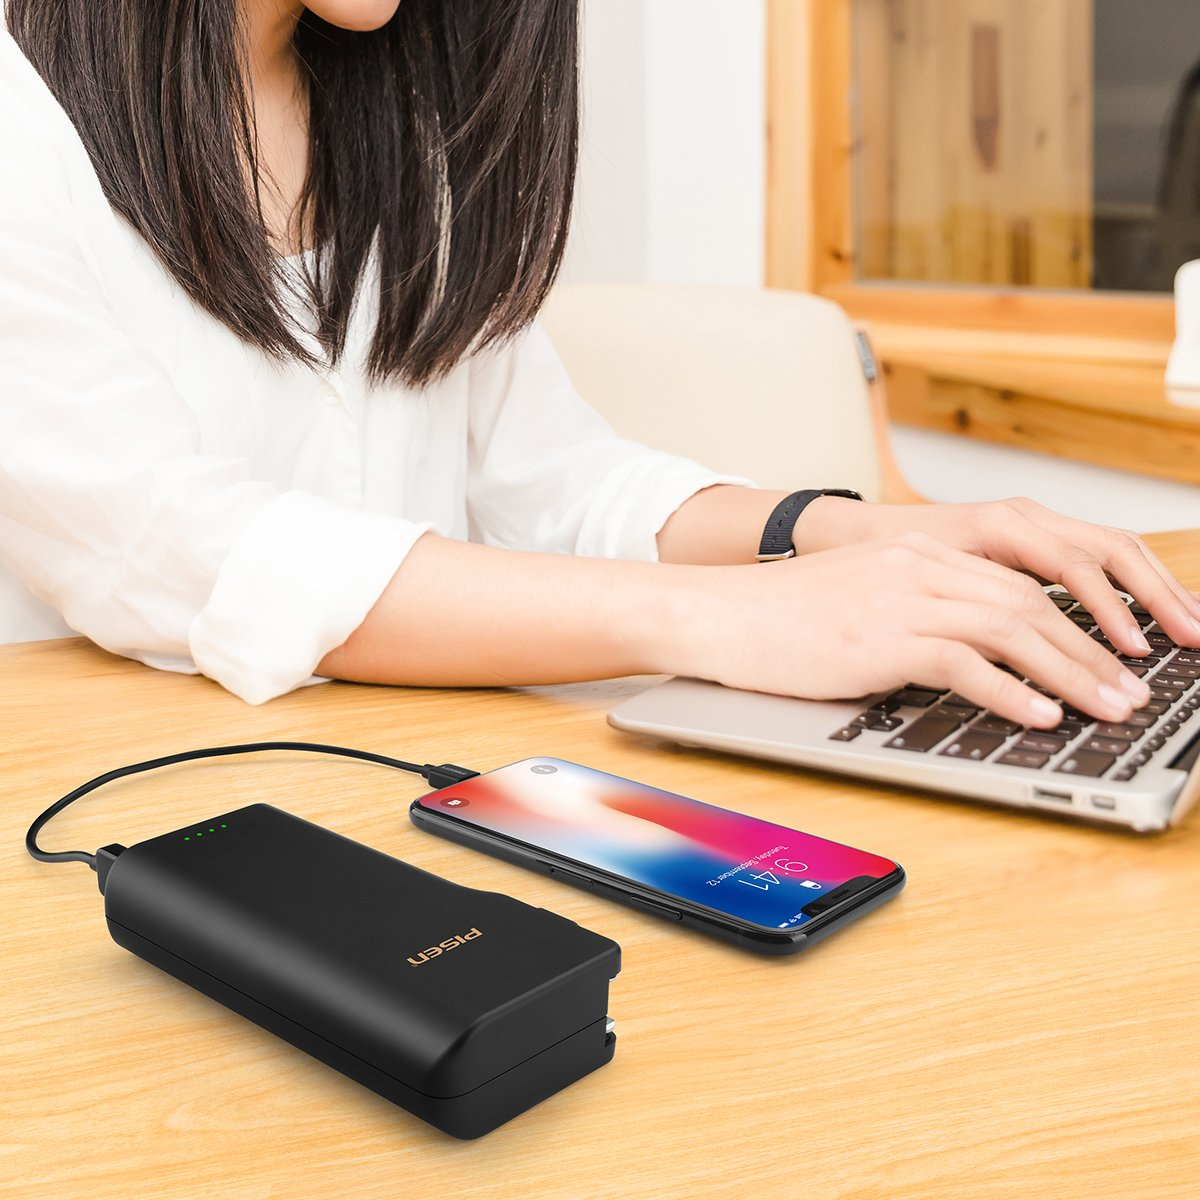 PISEN 2-in-1 Wall Charger and Power Bank 10000mAh